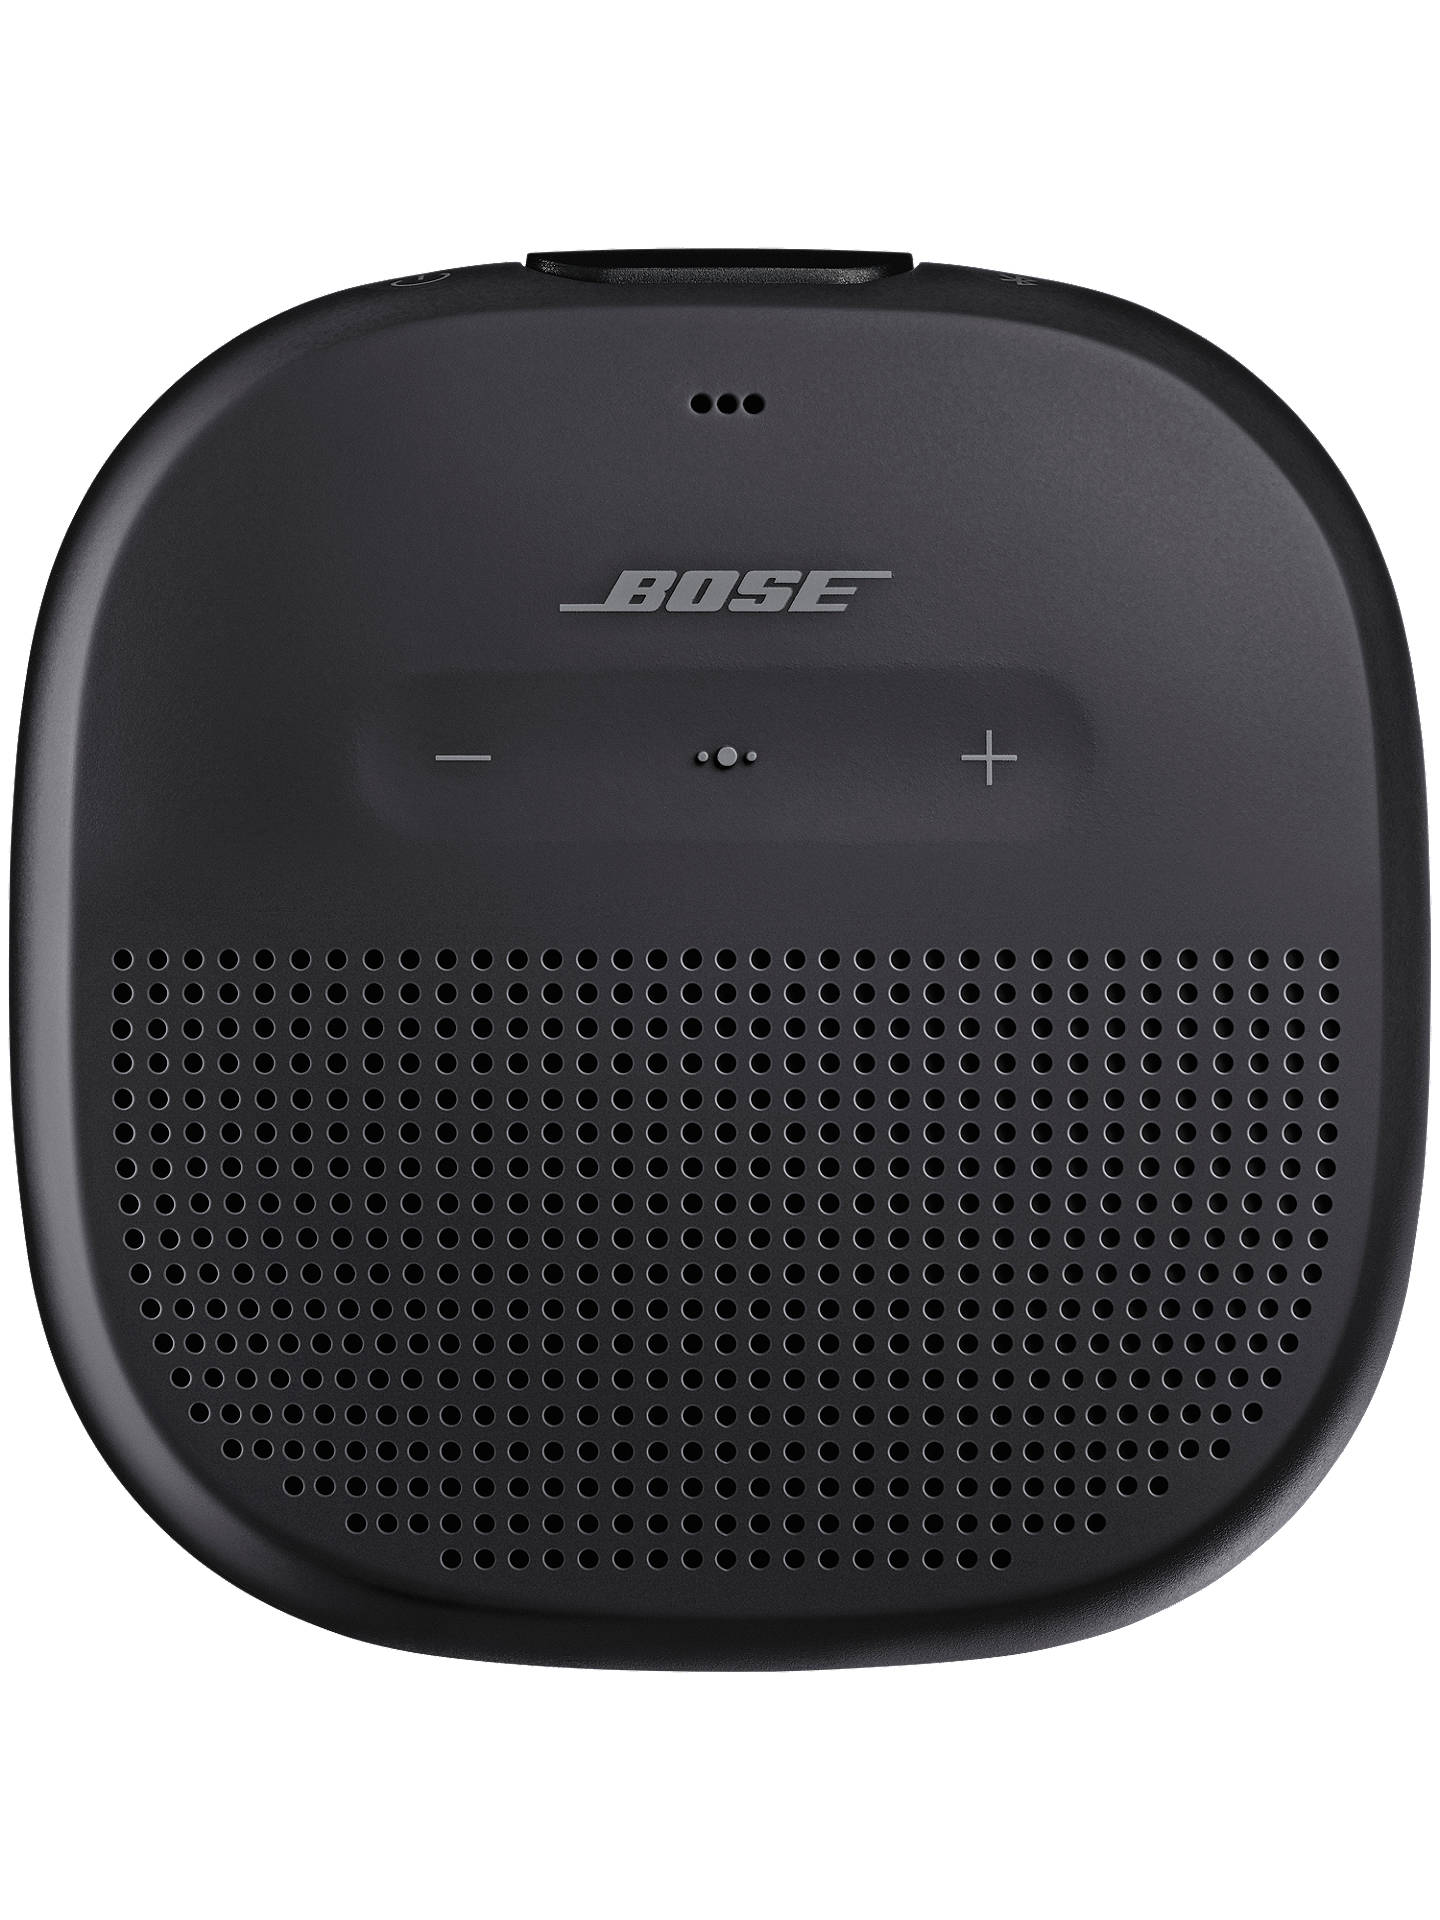 BuyBose® SoundLink® Micro Water-resistant Portable Bluetooth Speaker with Built-in Speakerphone, Black Online at johnlewis.com